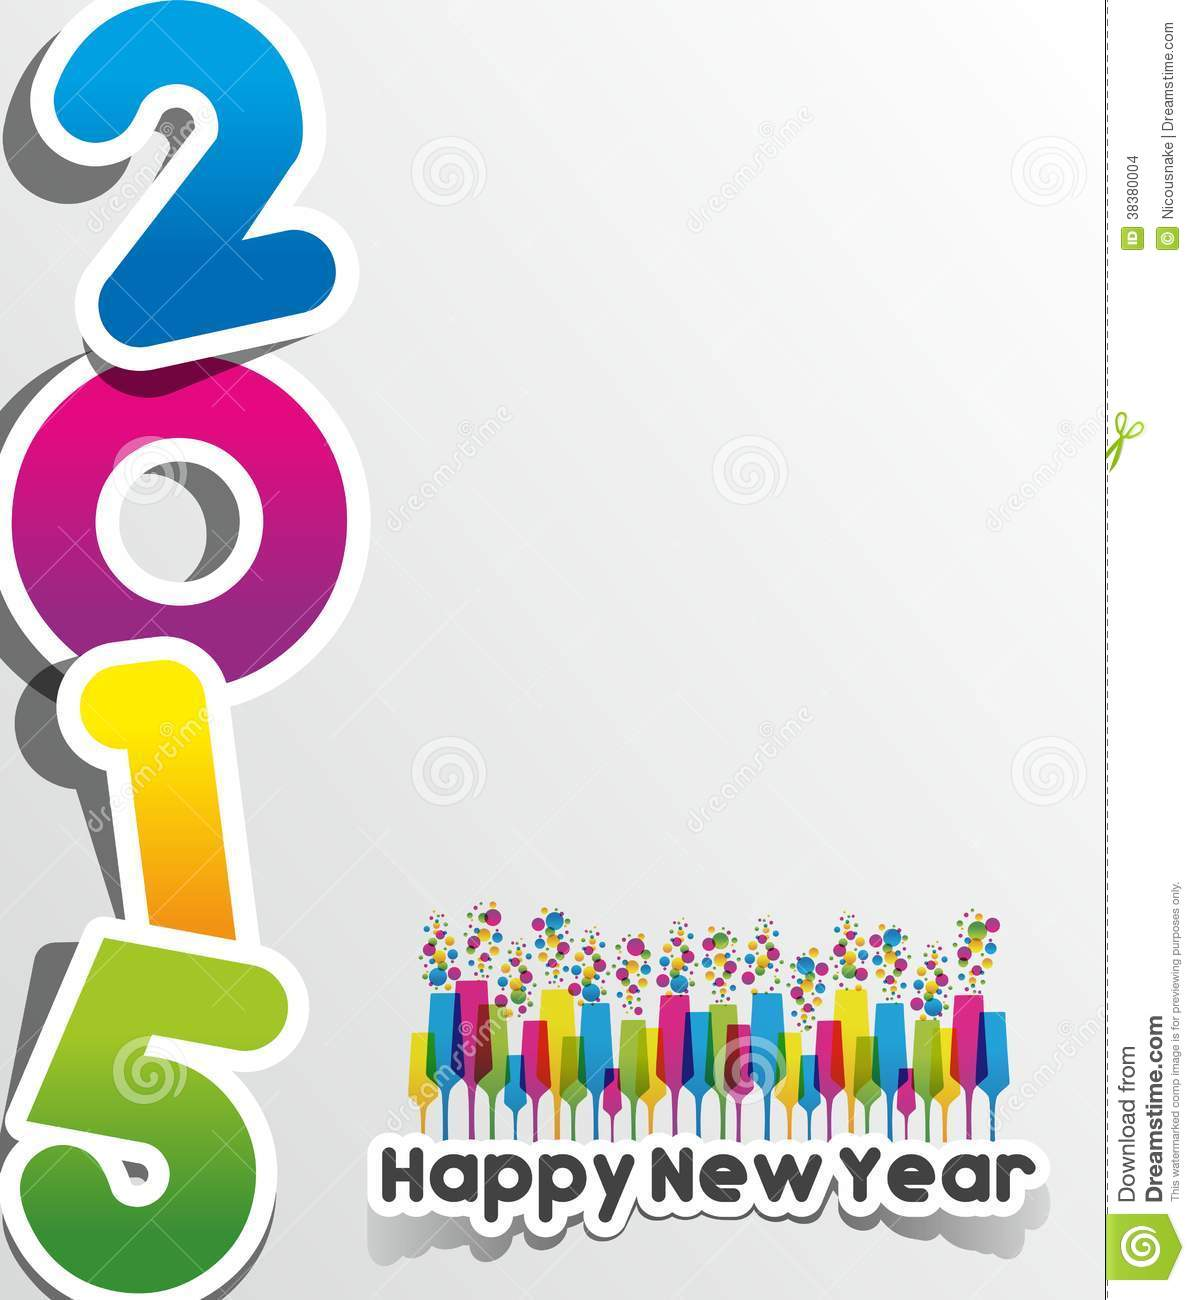 Happy new year 2015 greeting card stock vector illustration of happy new year 2015 greeting card calendar decoration kristyandbryce Choice Image